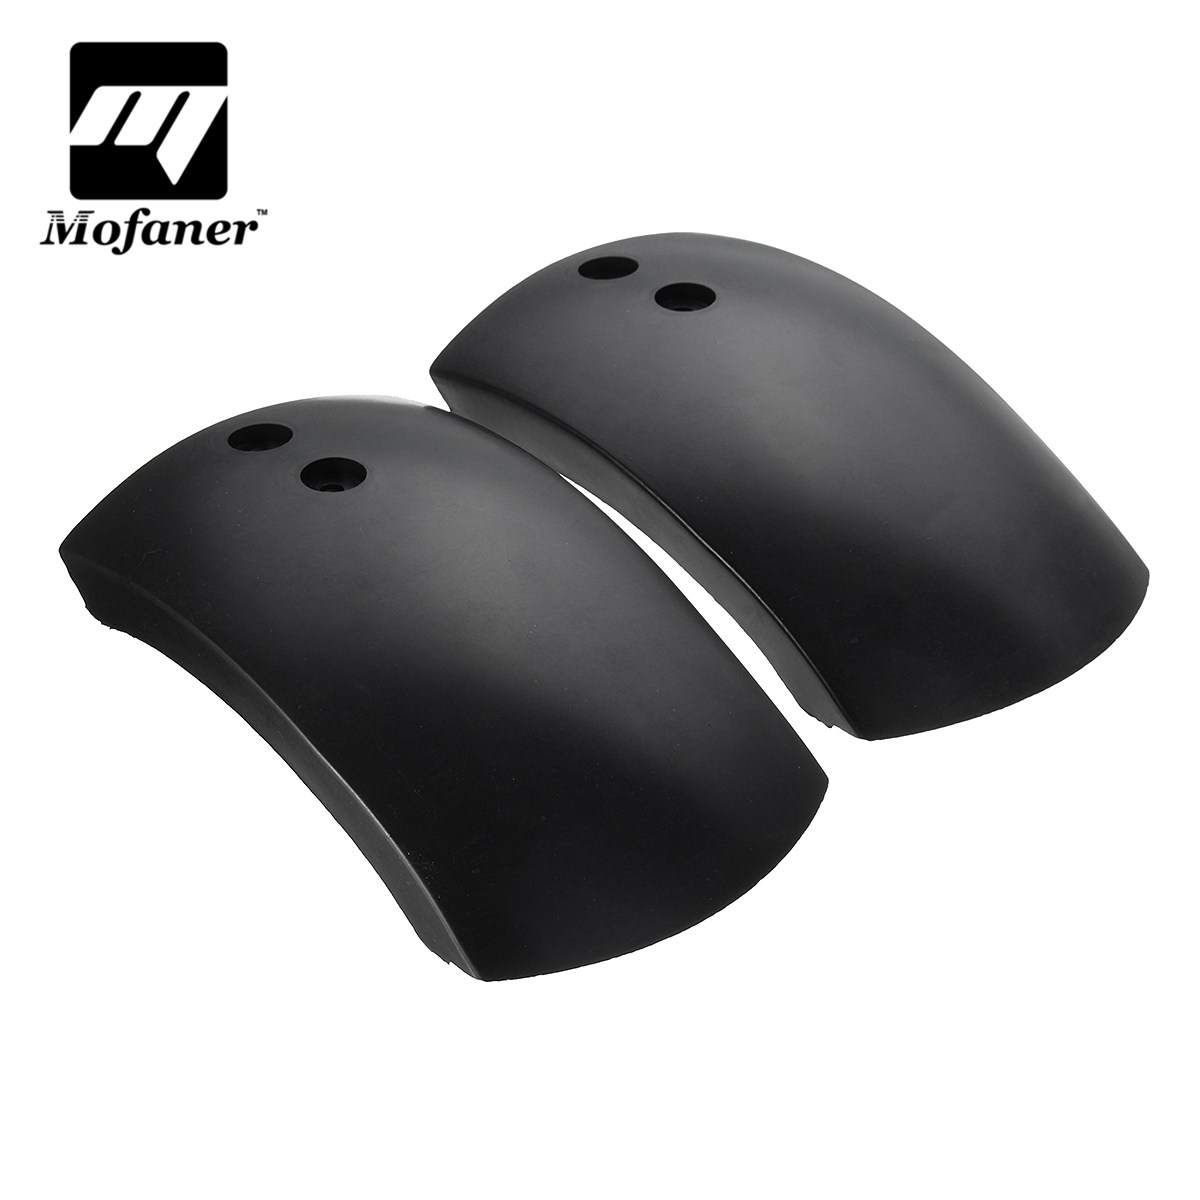 2pcs Front Rear For Fender Mud Guards Cover Fit For 43cc 47 49cc Mini Quad Dirt Bike ATV